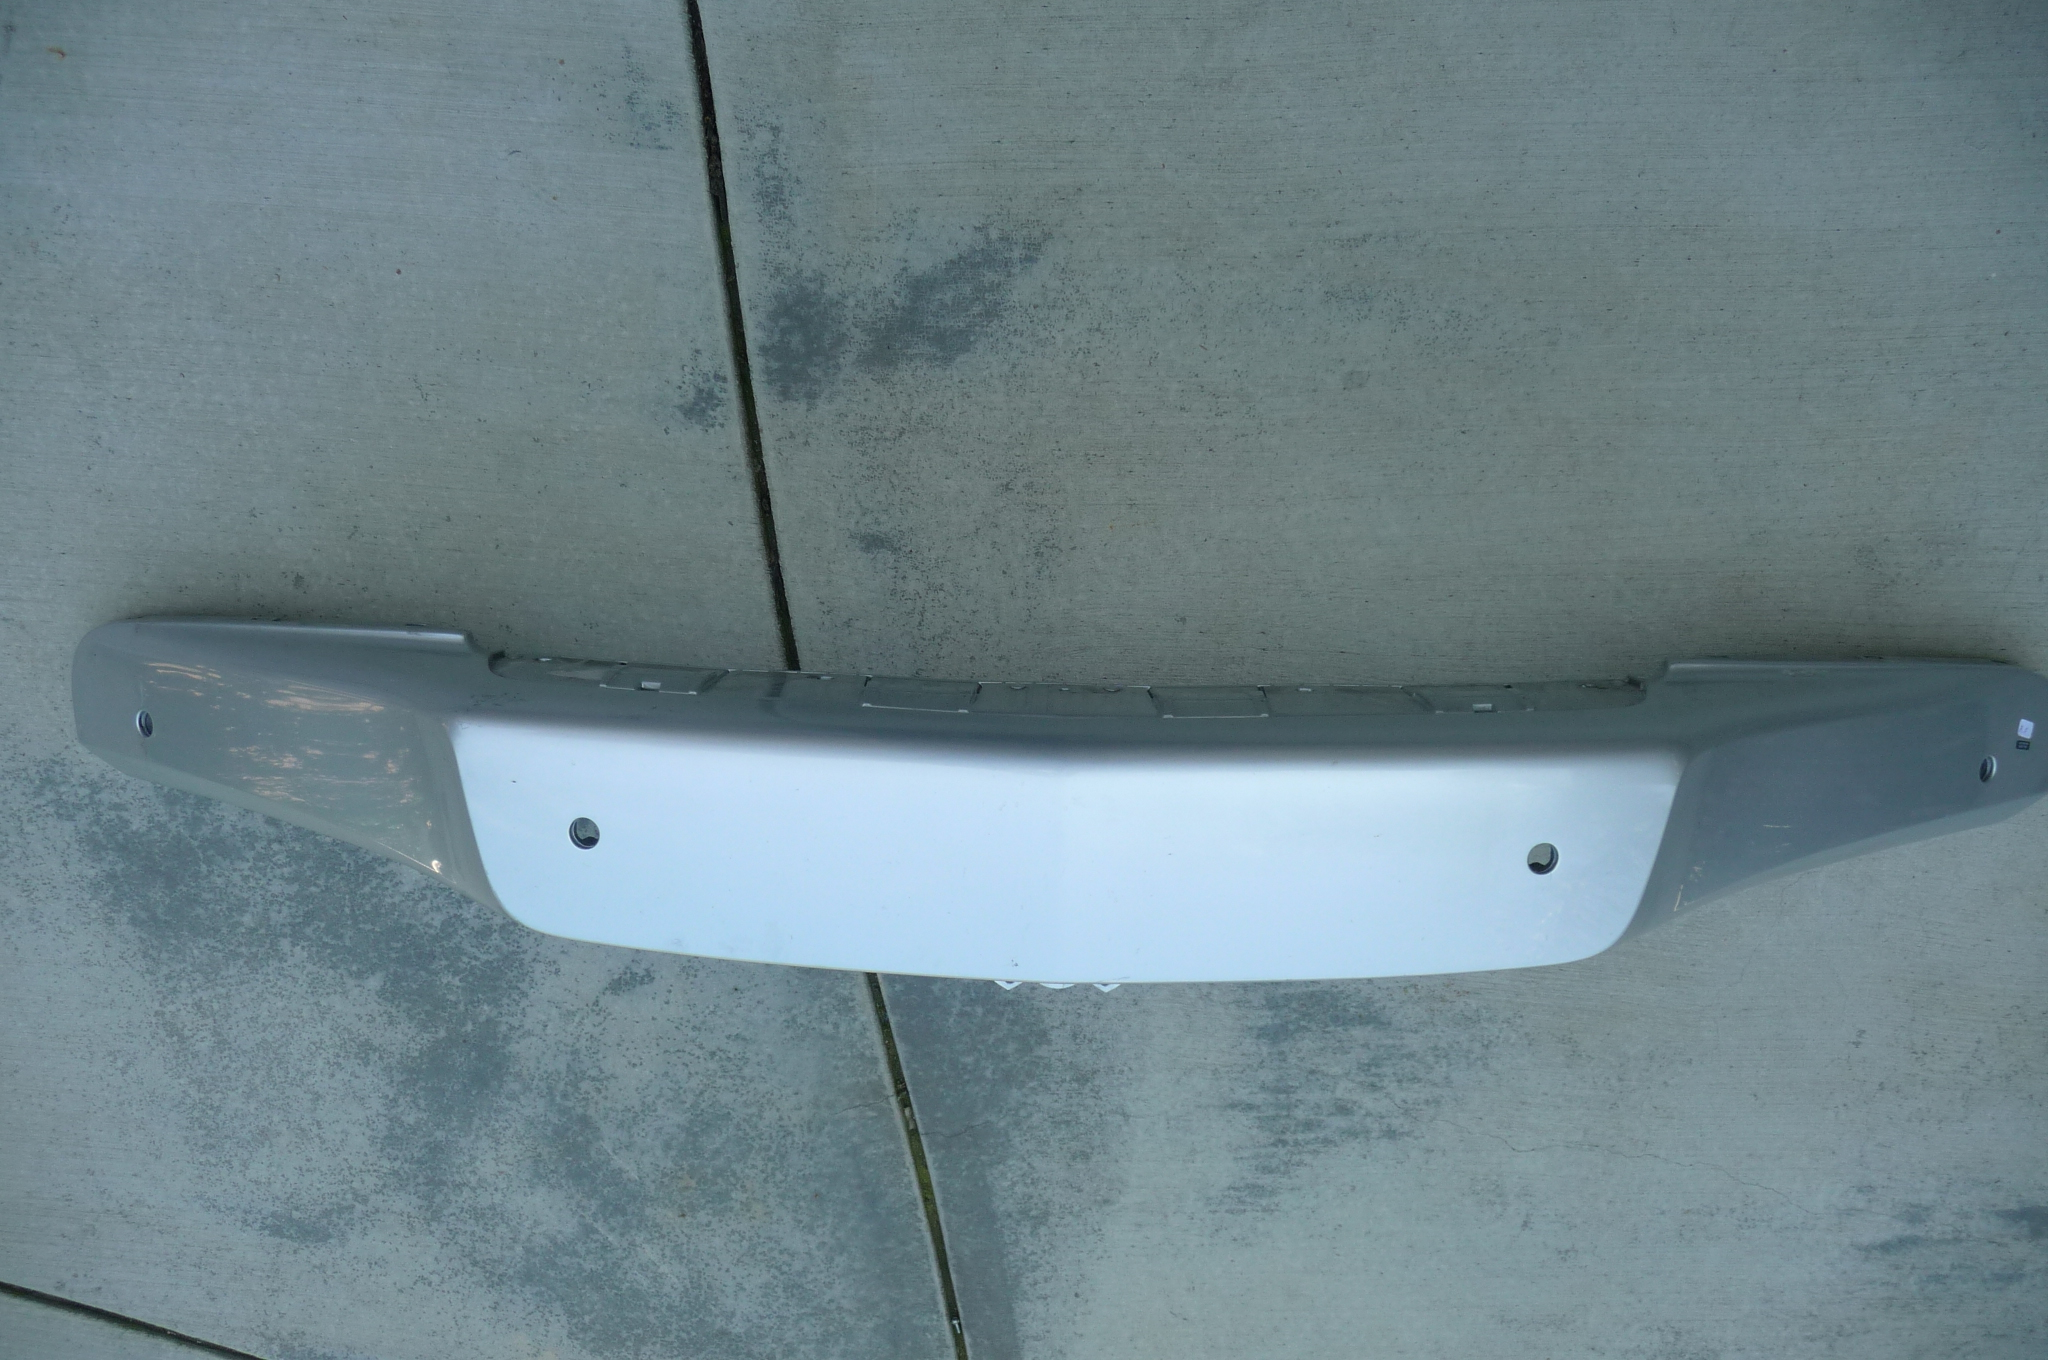 Bentley Mulsanne Upper Front Bumper Cover 3Y0807248 - Used Auto Parts Store | LA Global Parts